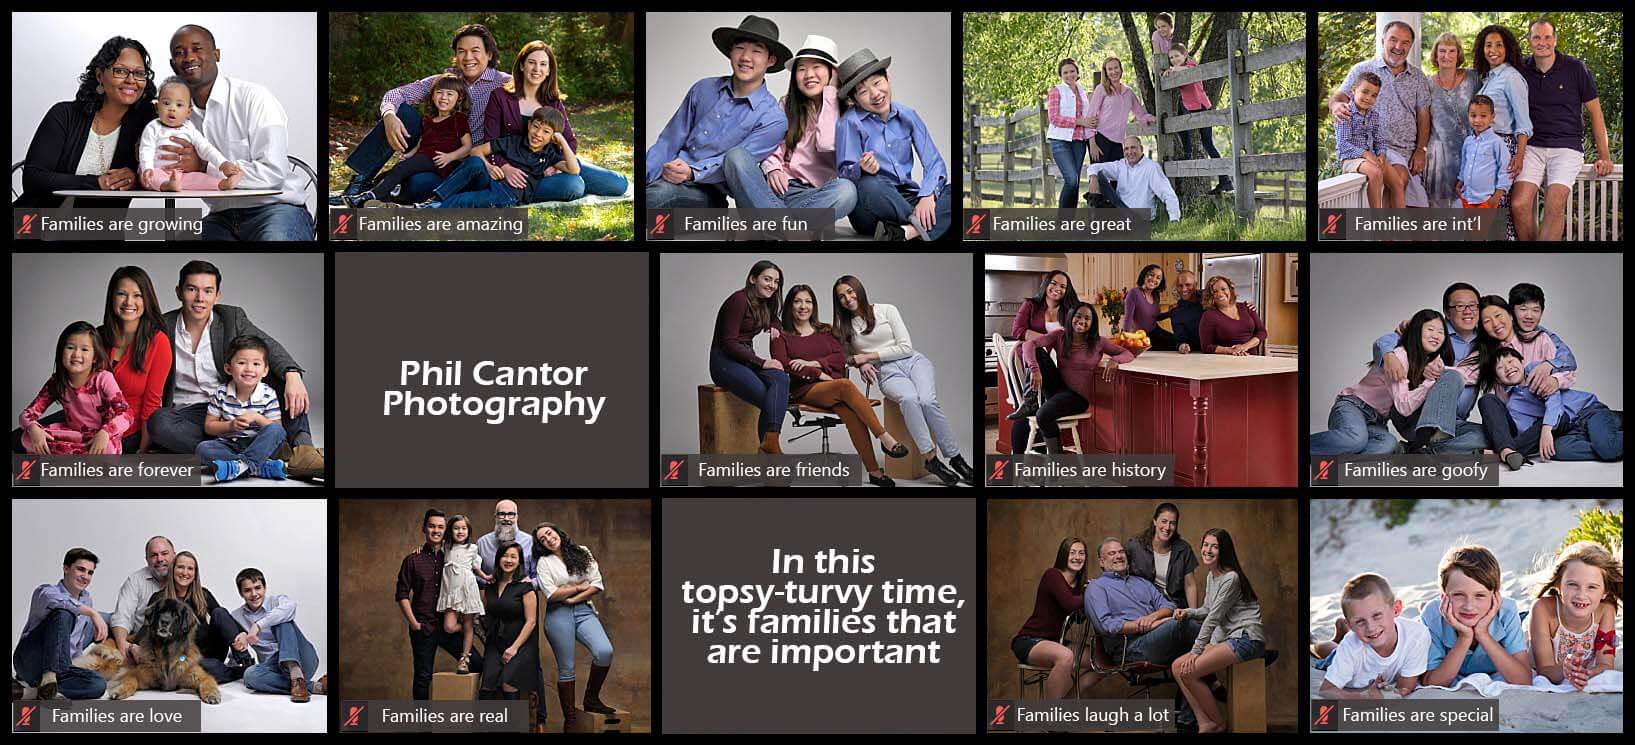 Family portraits are more important in critical times